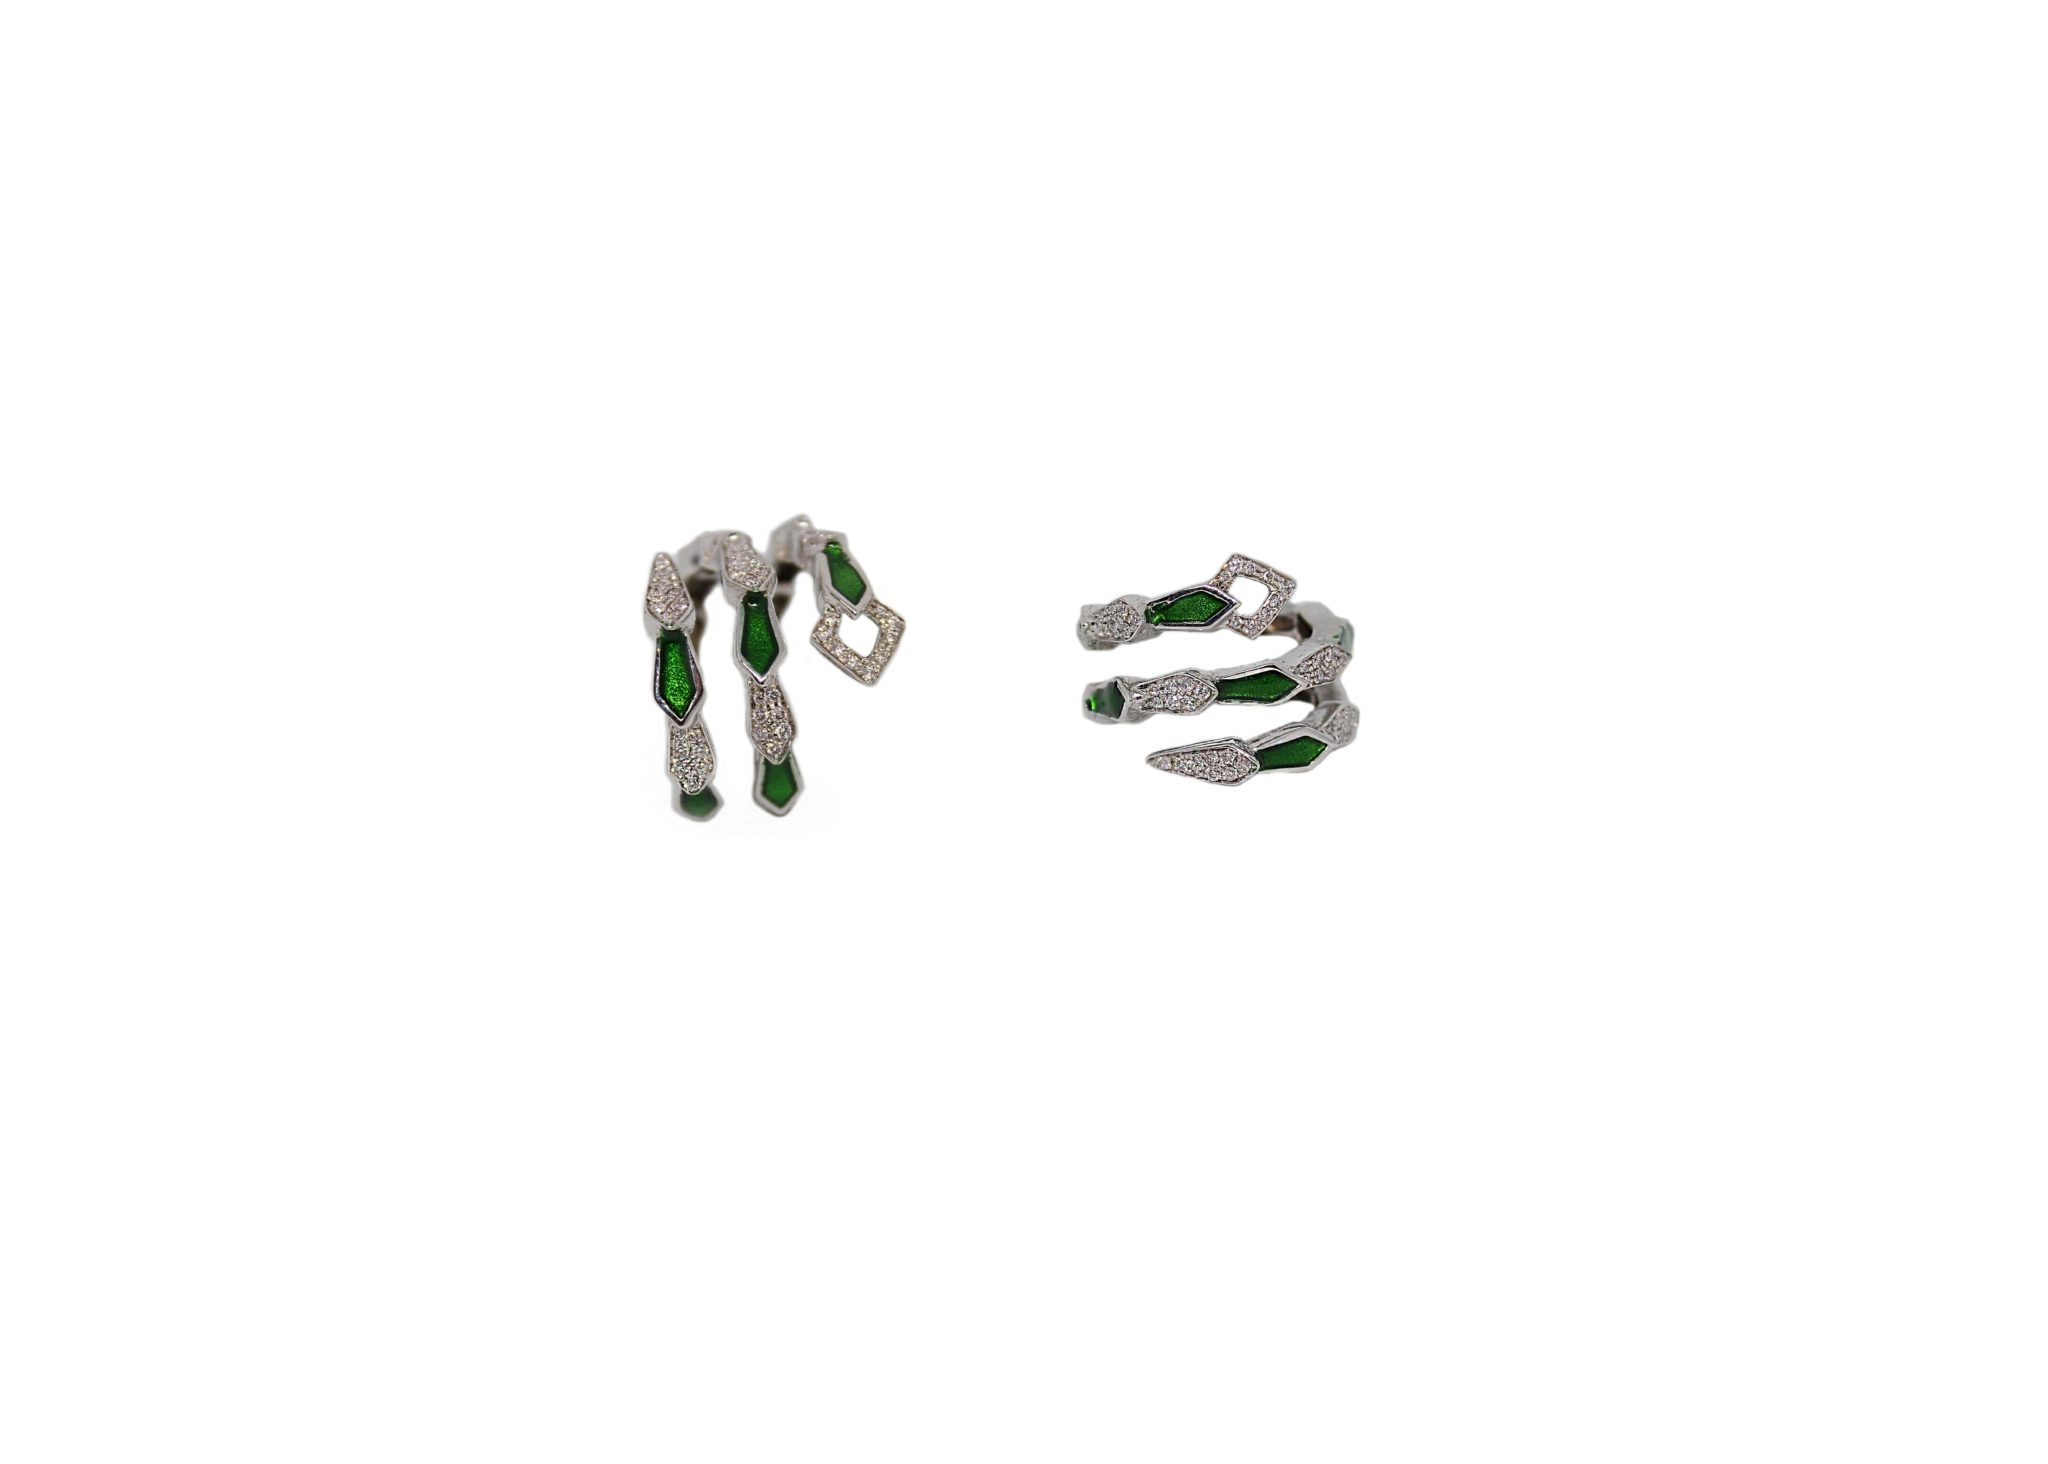 White gold spiral snake ring with pavé diamonds and green enamel